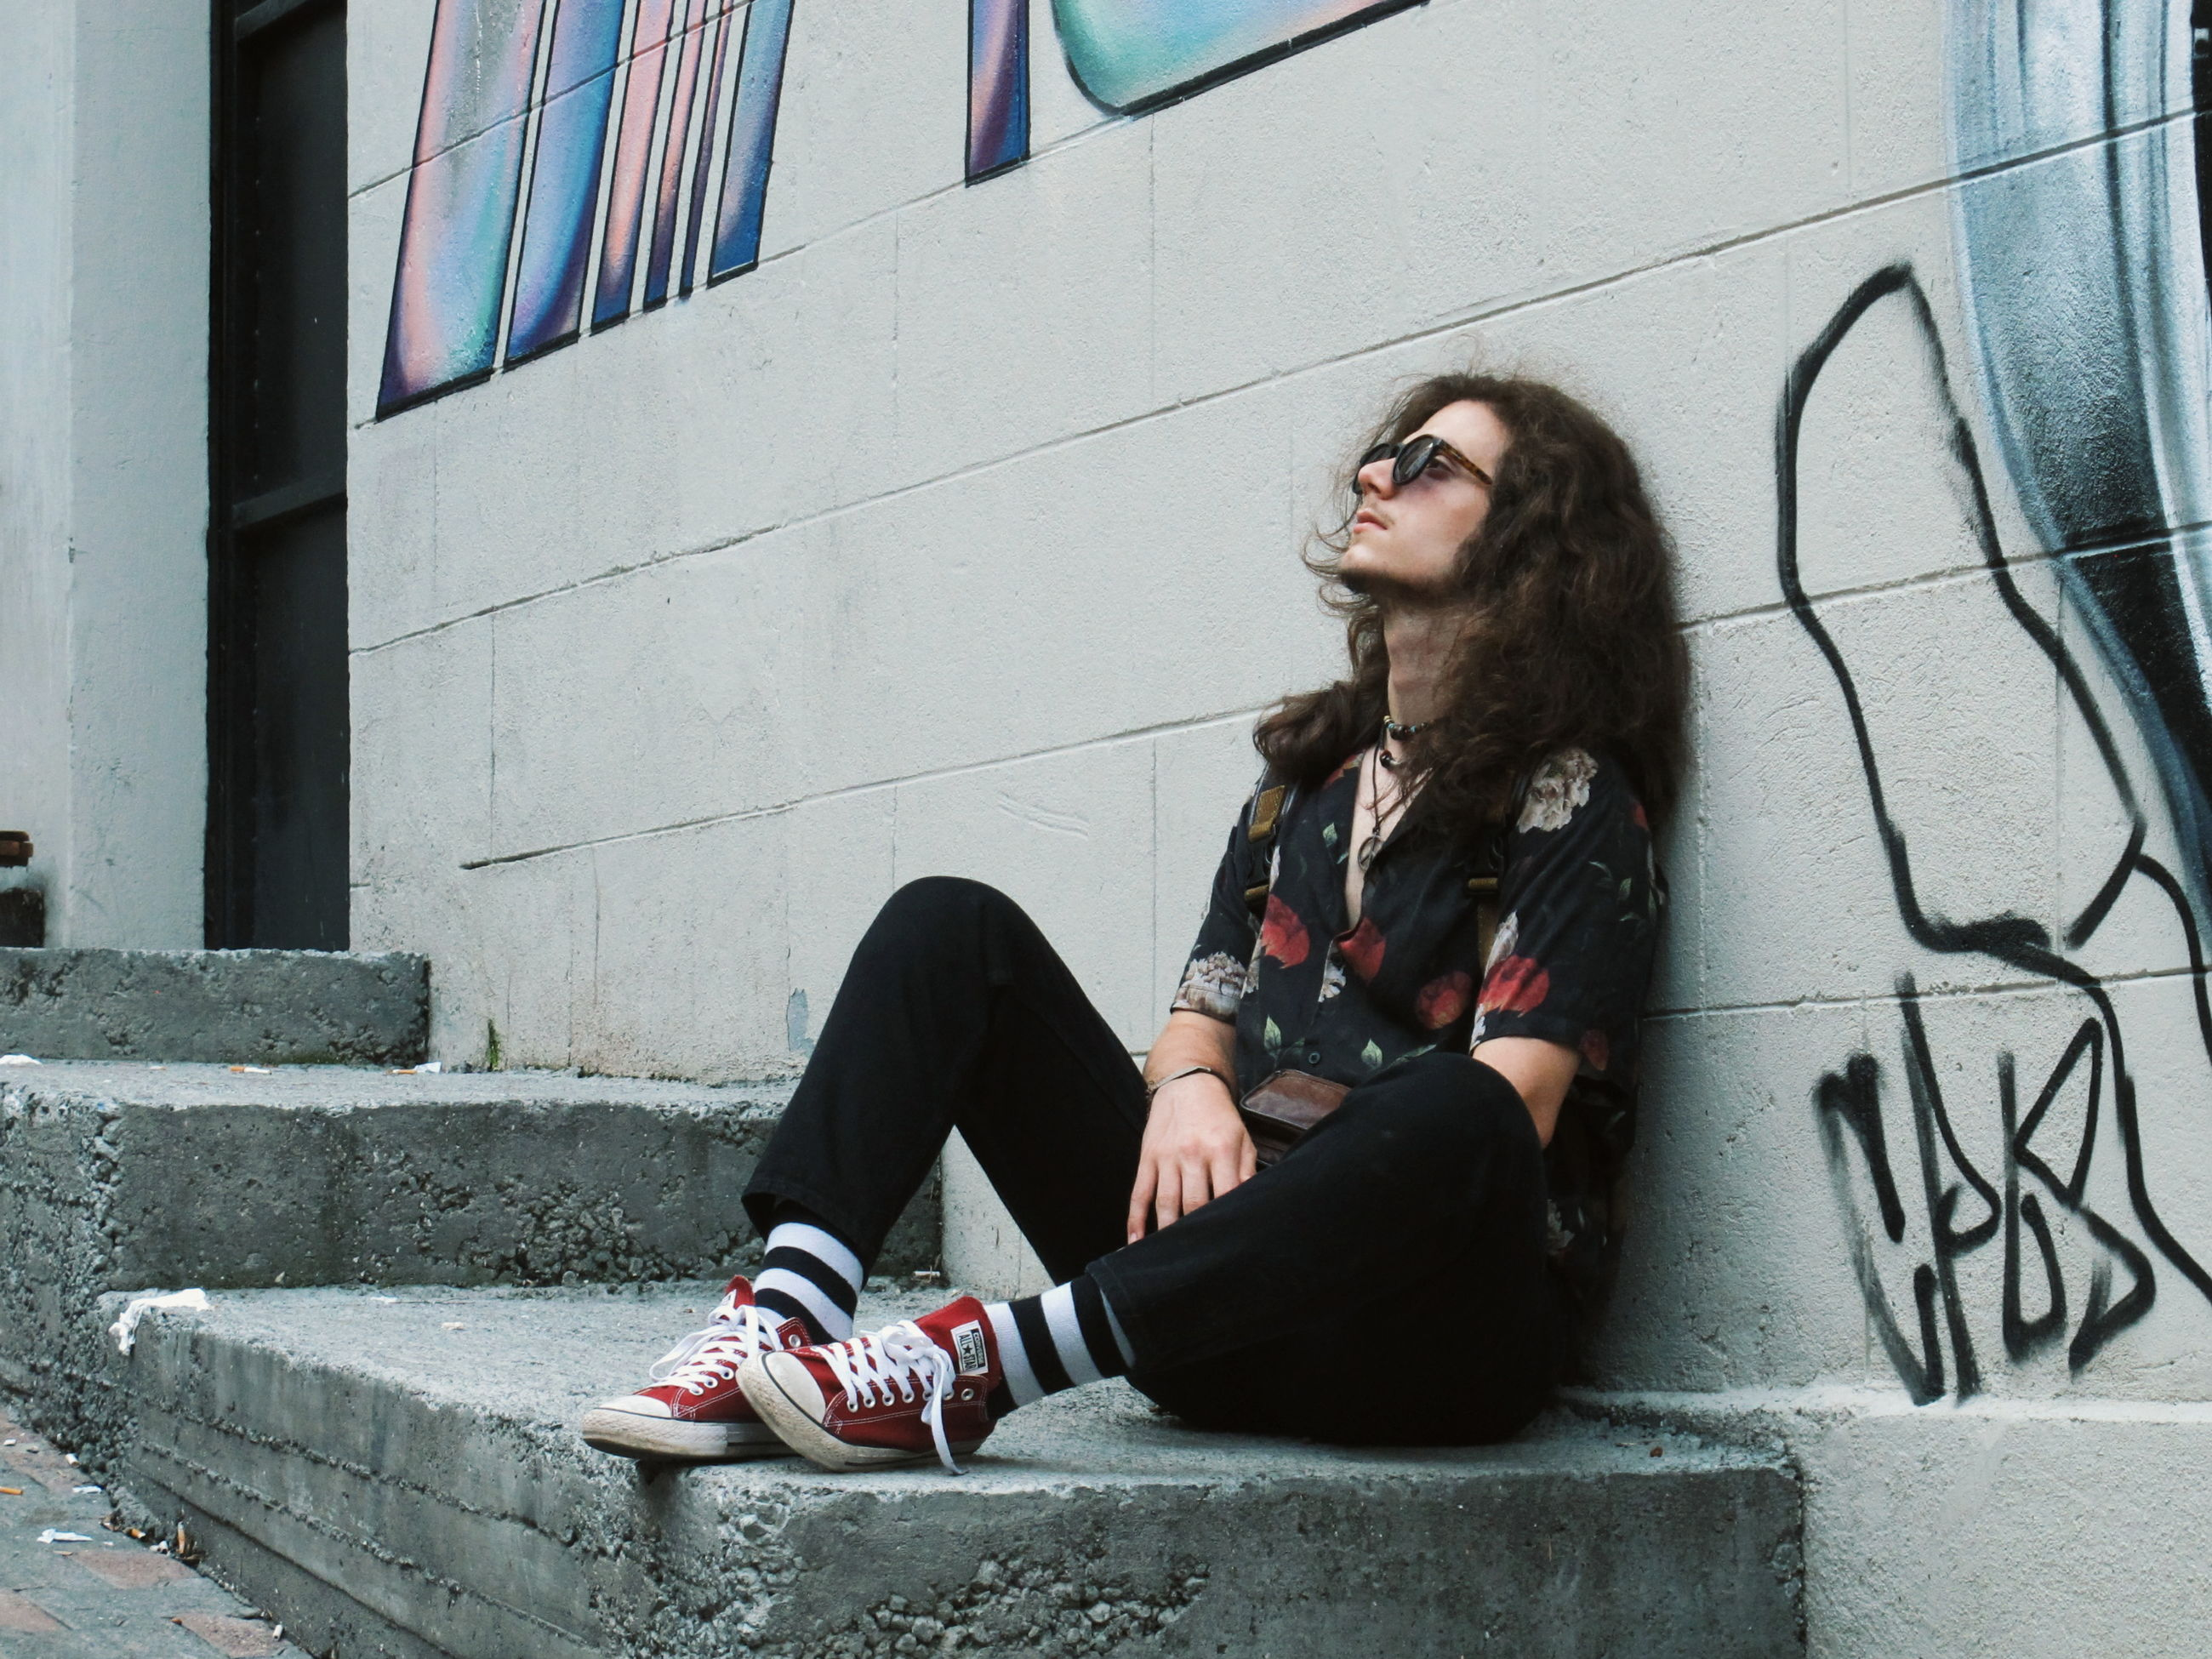 FULL LENGTH PORTRAIT OF YOUNG WOMAN SITTING AGAINST WALL